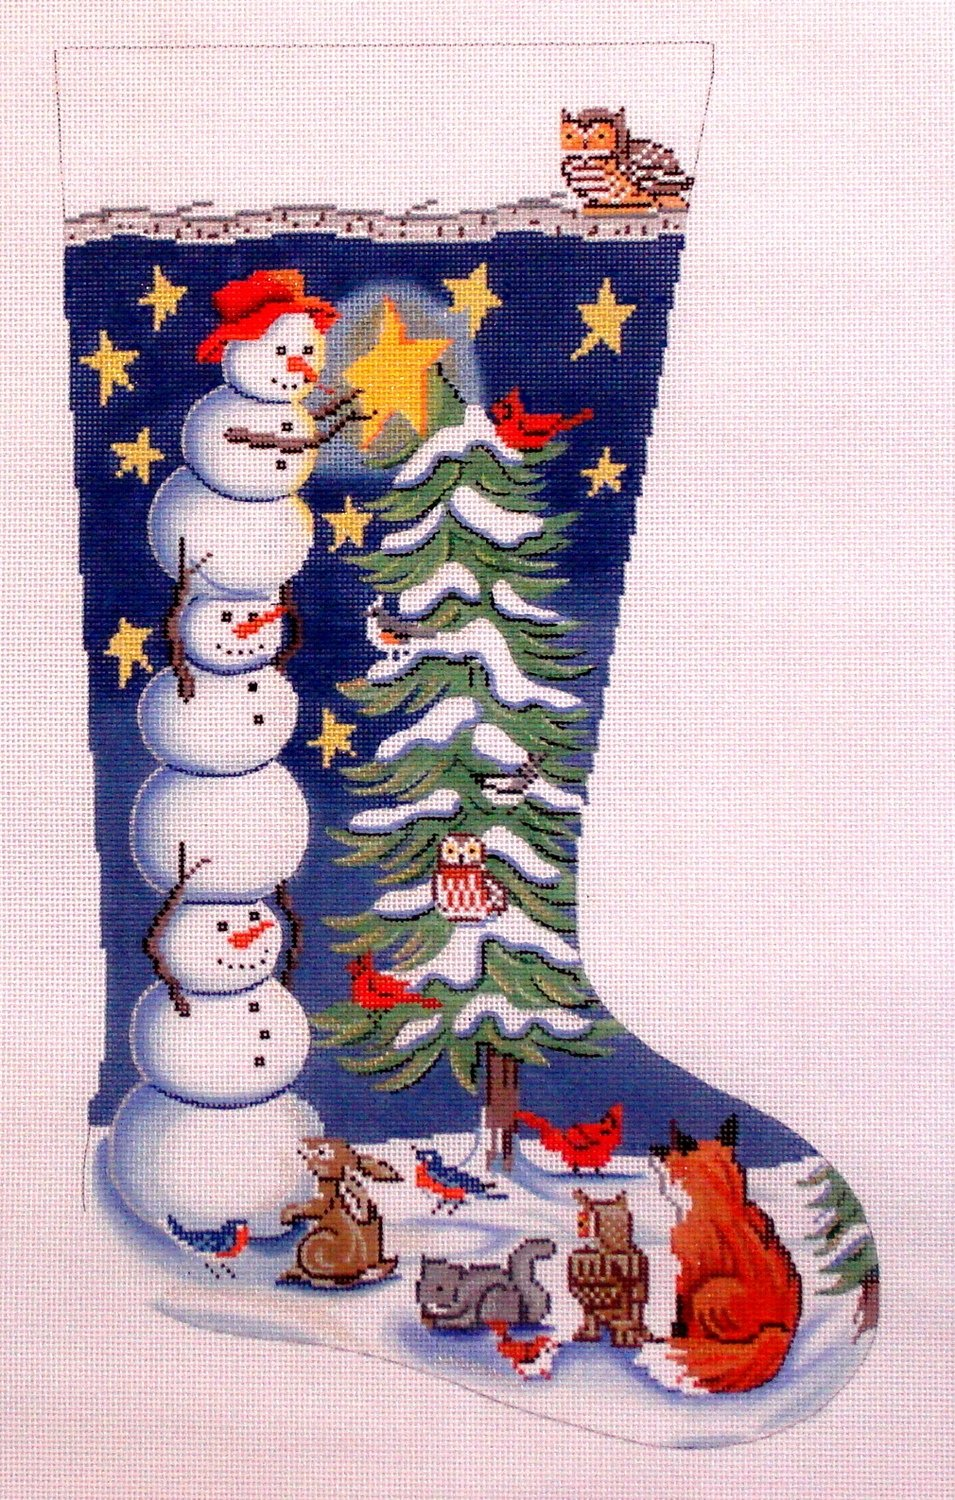 Tree Trimming Snowman Stocking   (Handpainted by Alice Peterson)